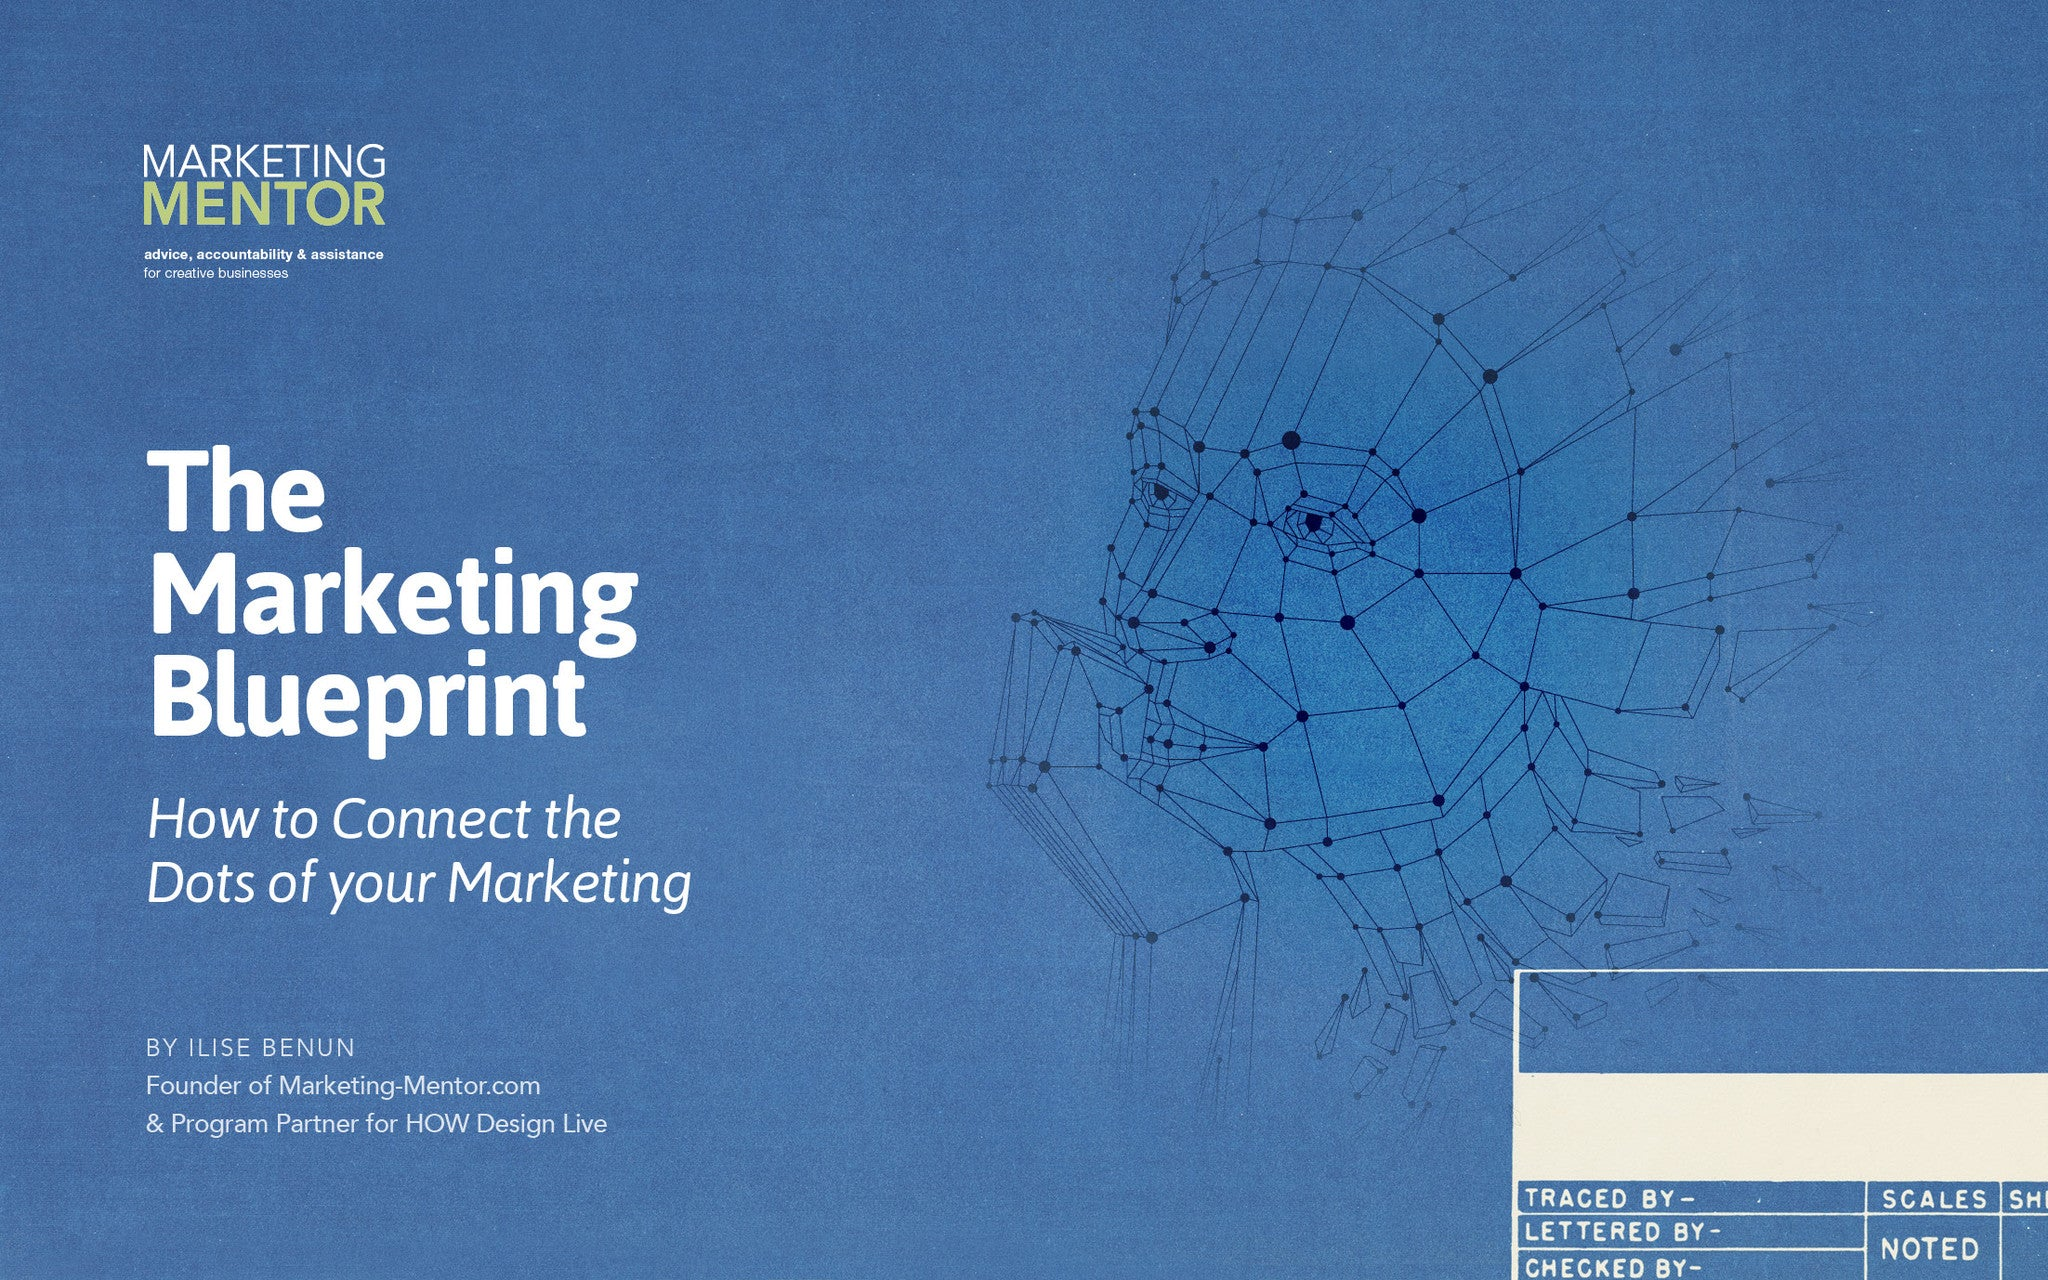 The marketing blueprint how to connect the dots of your marketing the marketing blueprint how to connect the dots of your marketing malvernweather Image collections